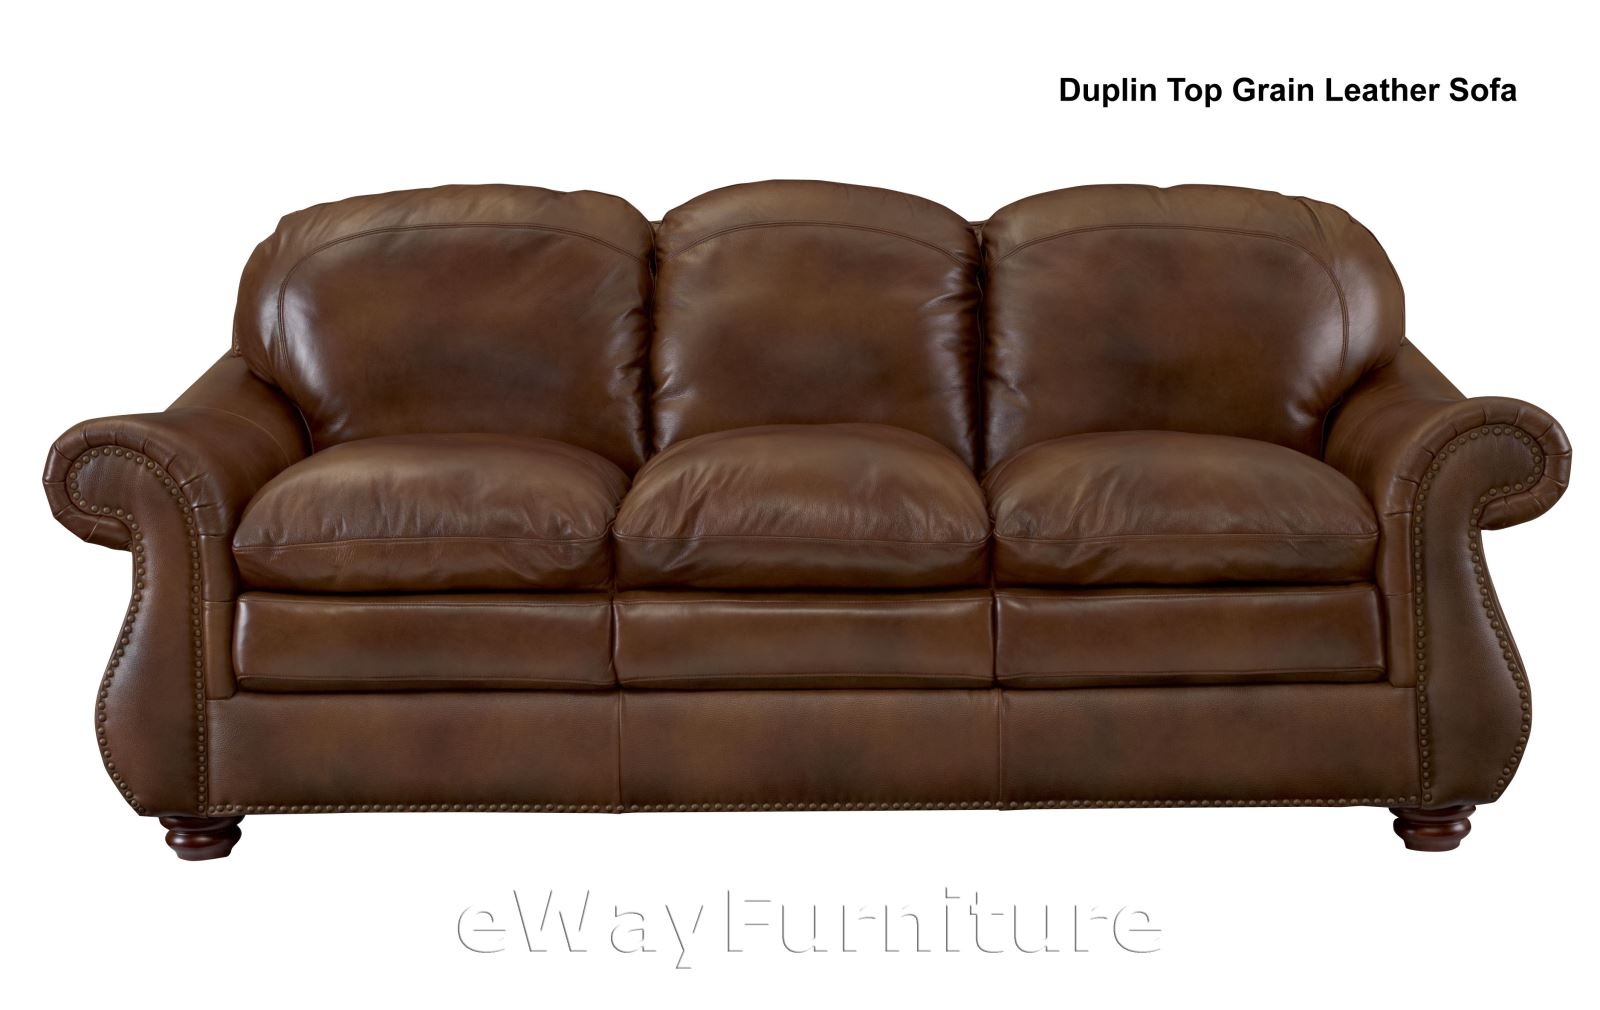 top grain leather sofa duplin top grain leather sofa 6286